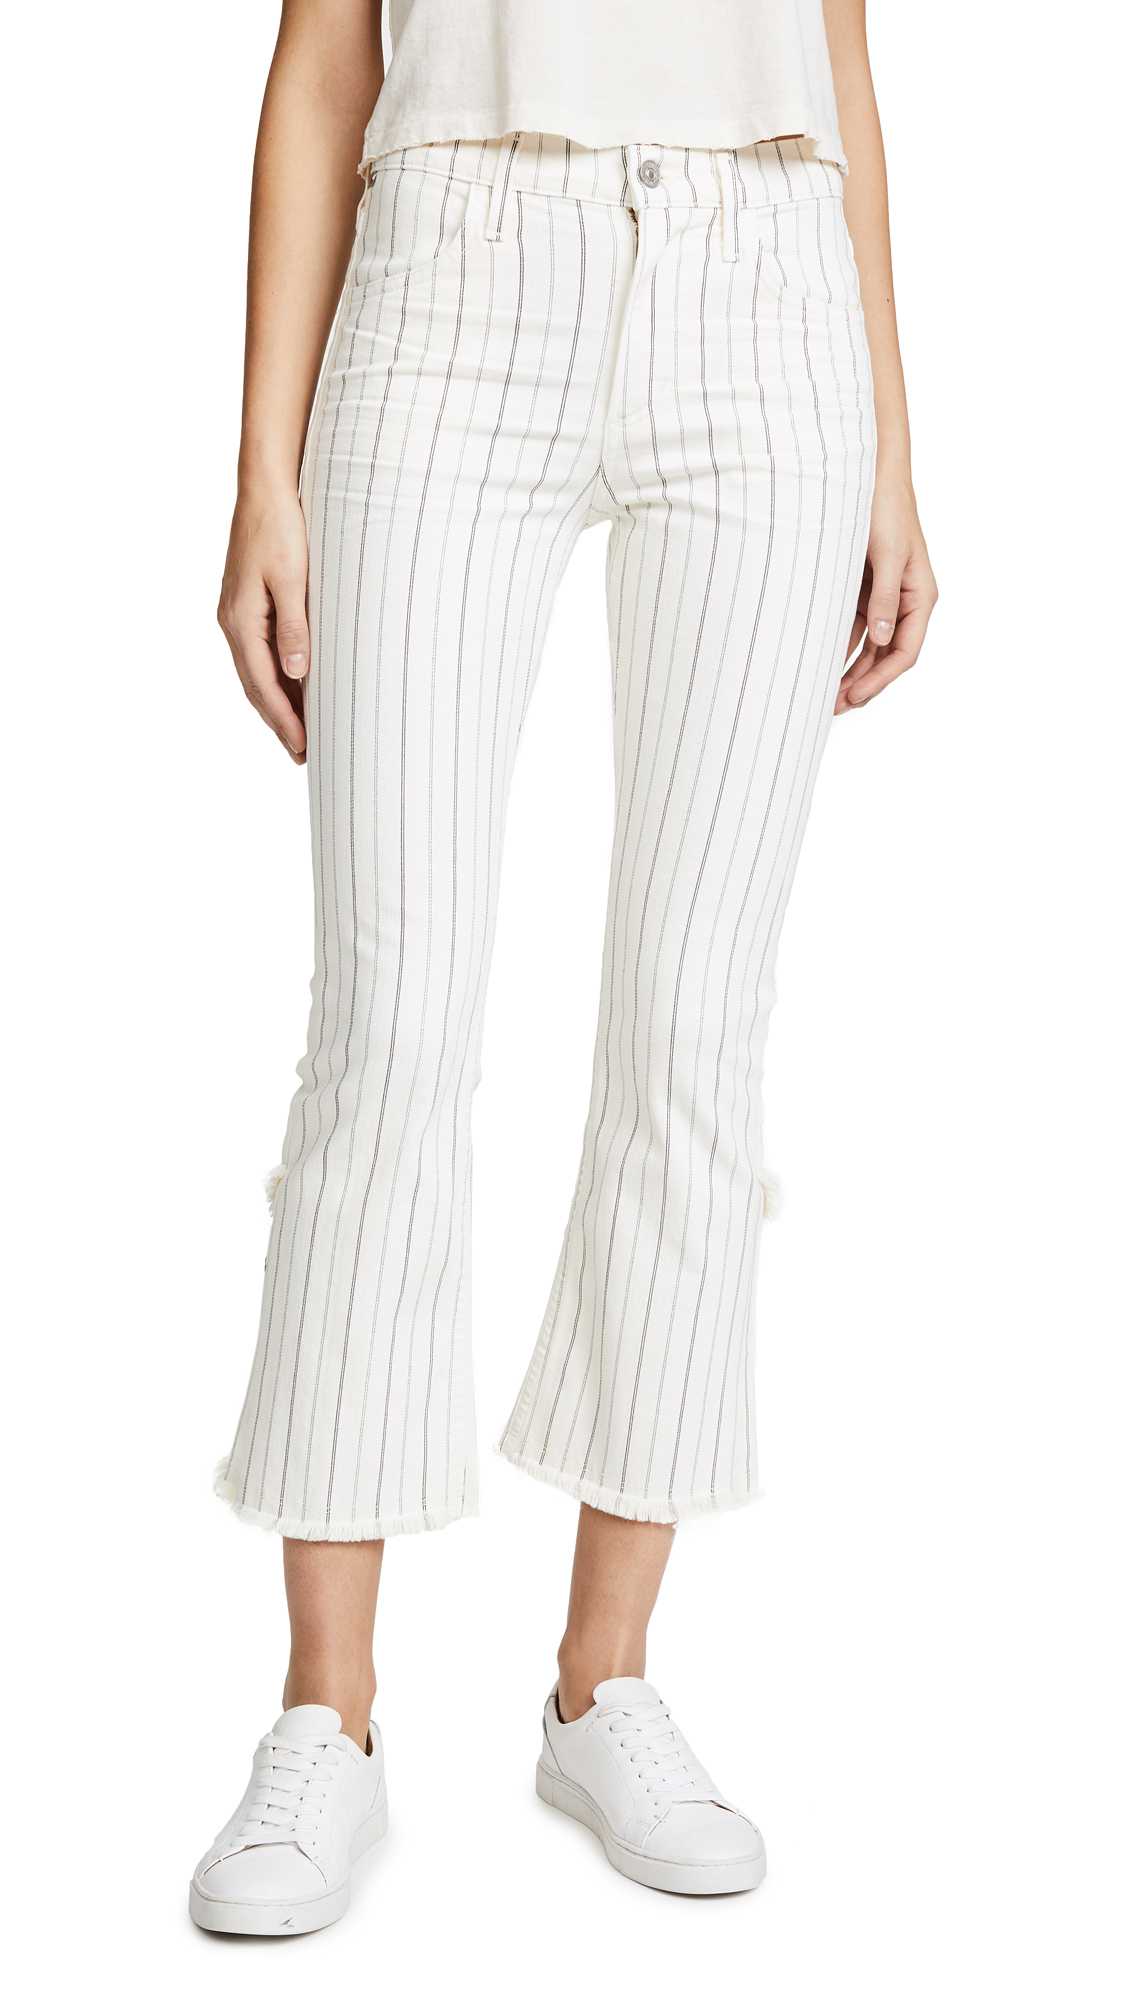 Citizens of Humanity Drew Fray Jeans - Cream Stripe